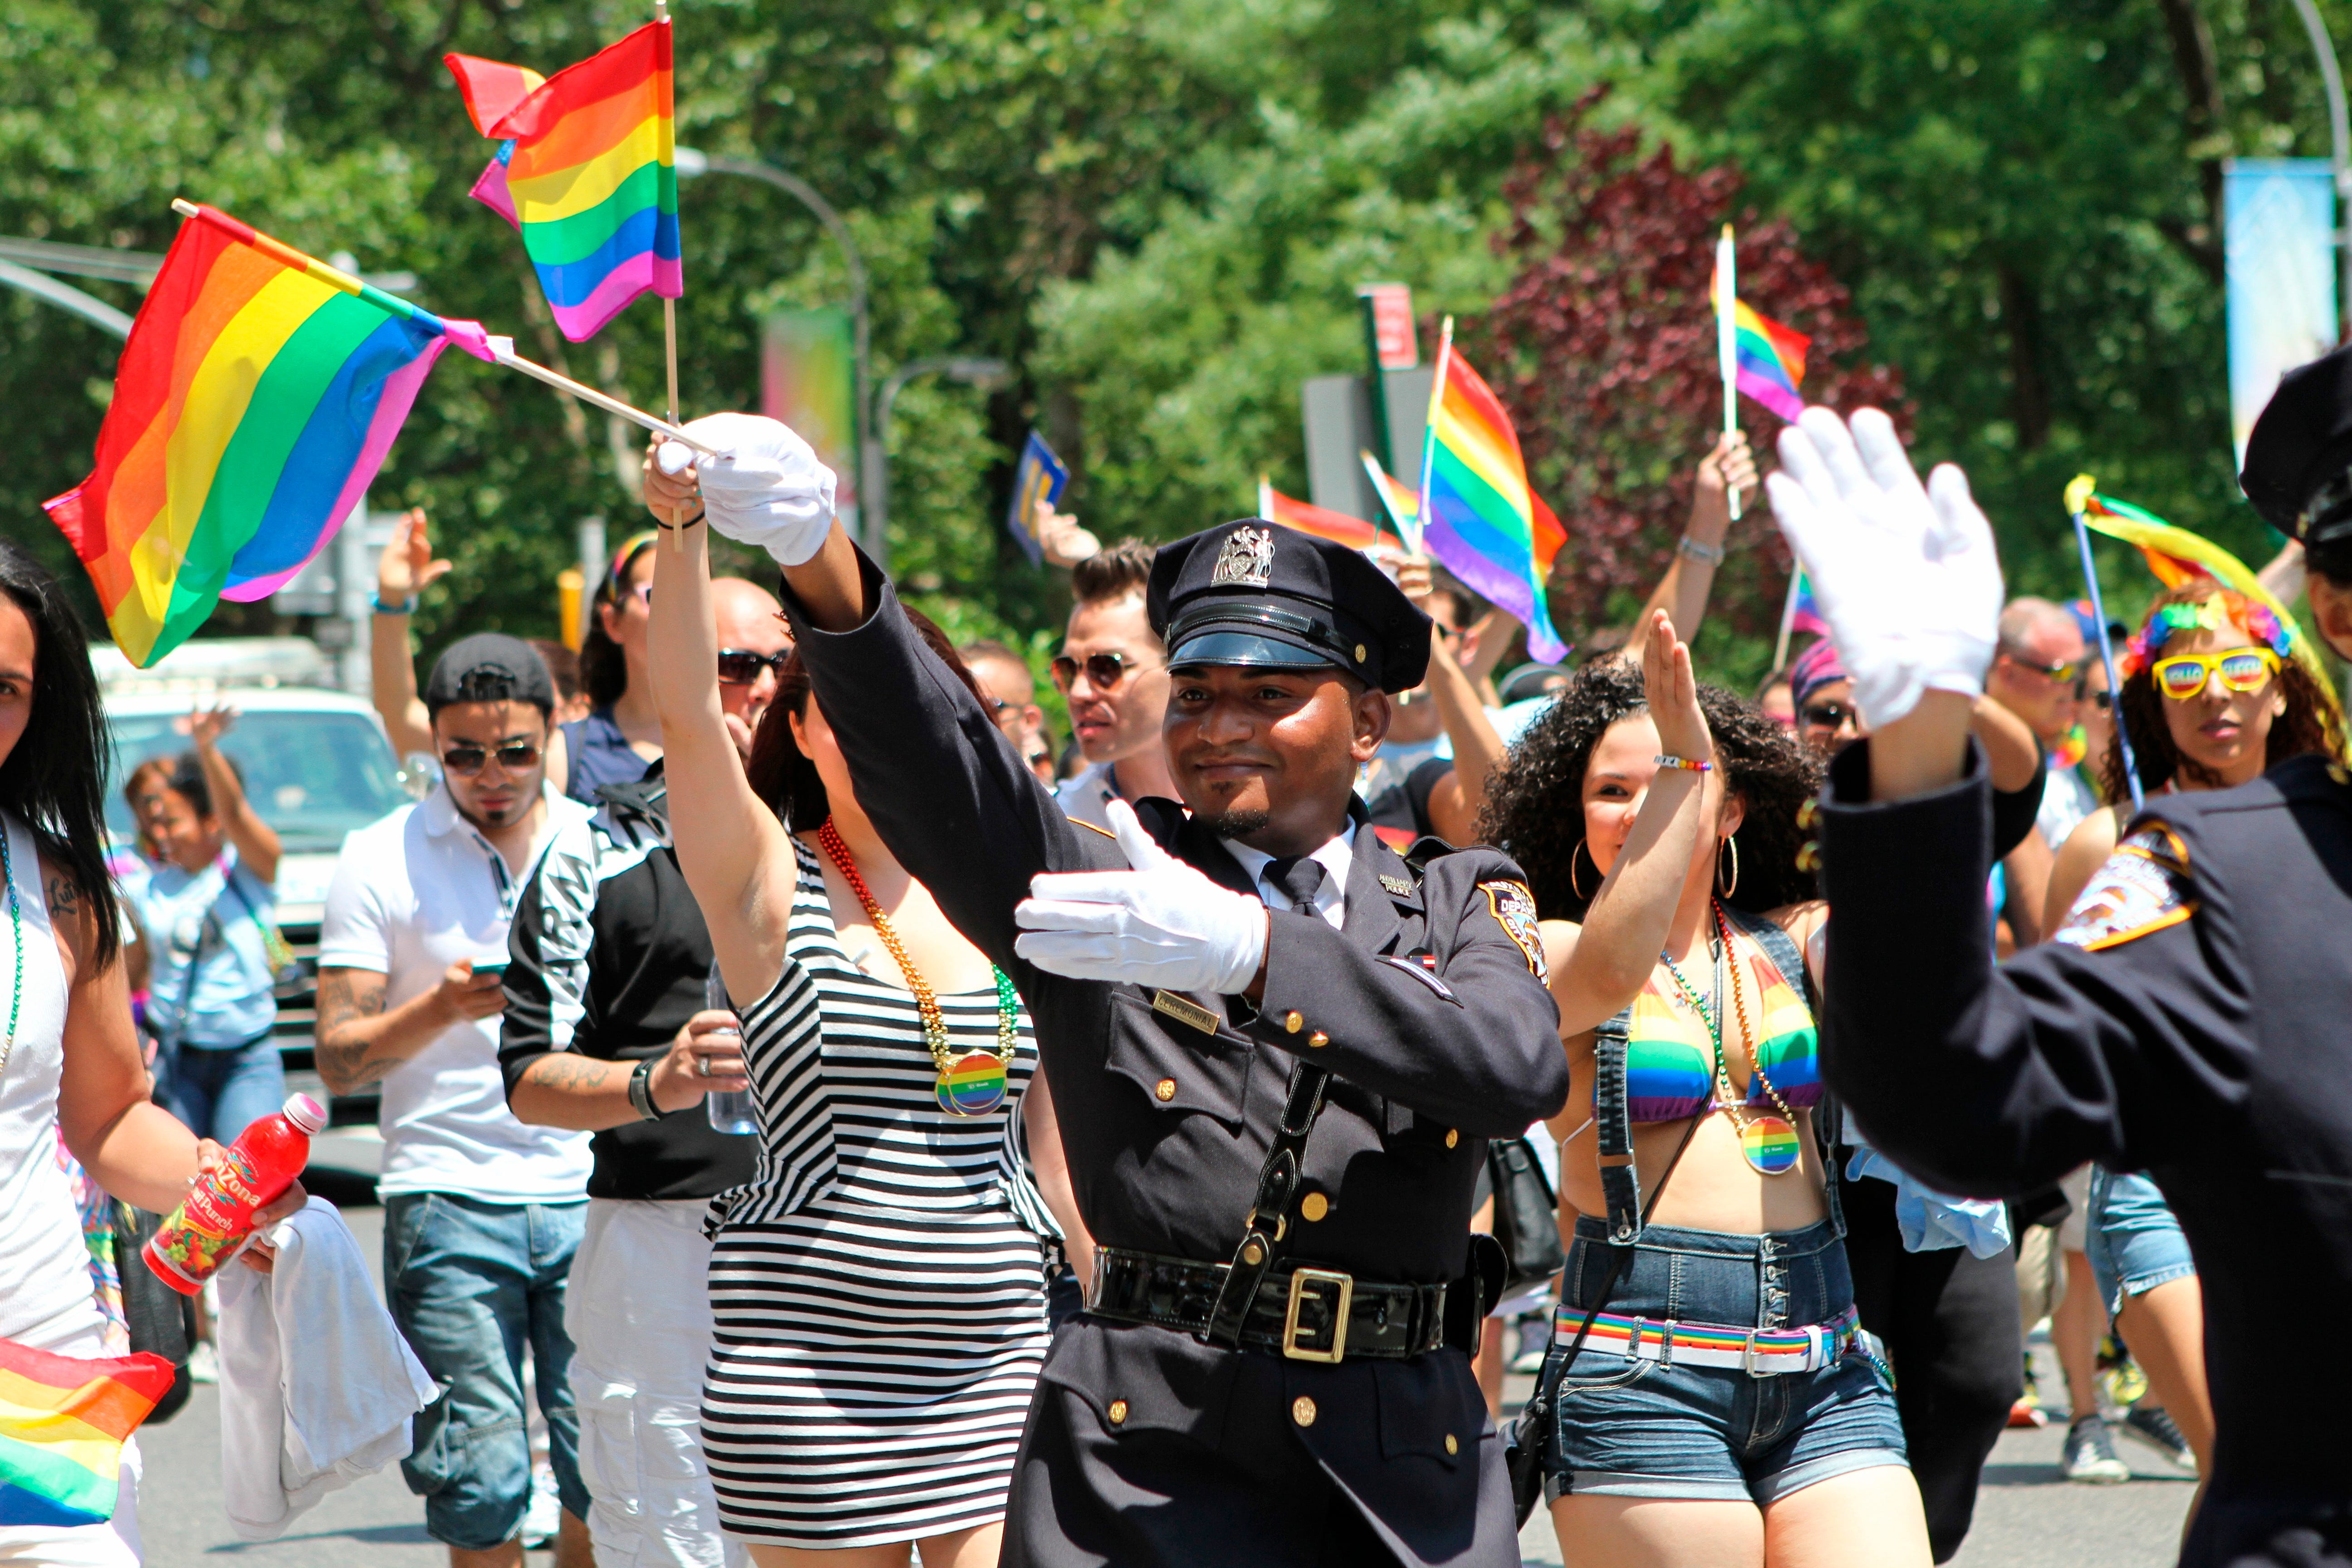 NYC Pride parade bans police; Gay officers 'disheartened' 2